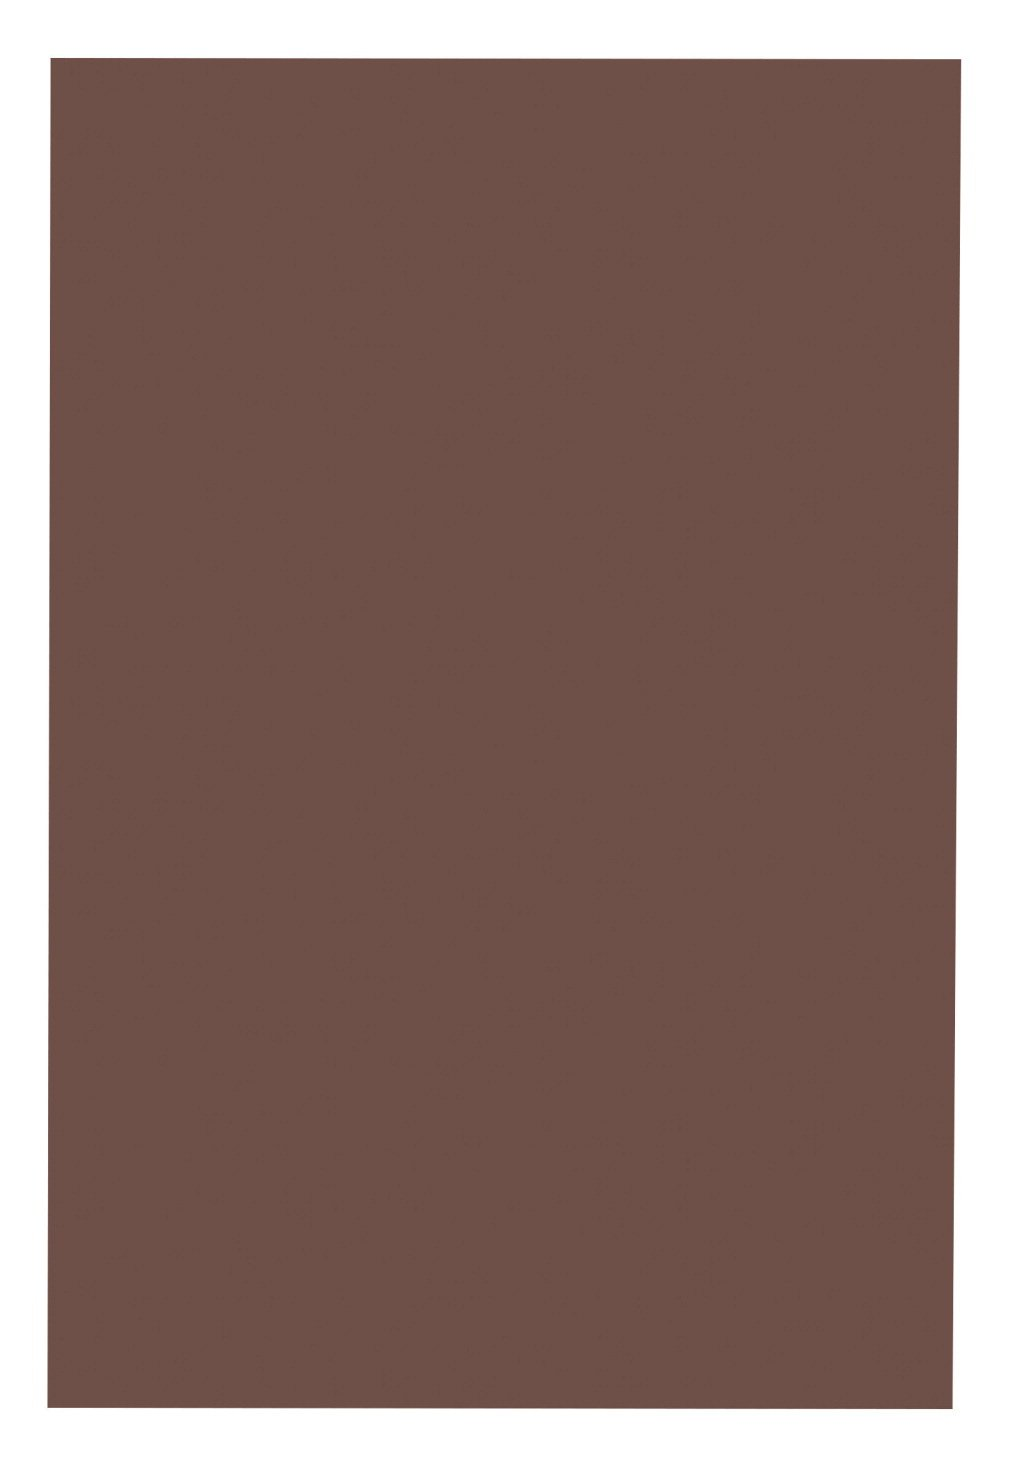 School Smart 1485736 Railroad Board, 4-ply Thickness, 22'' x 28'', Brown (Pack of 25)